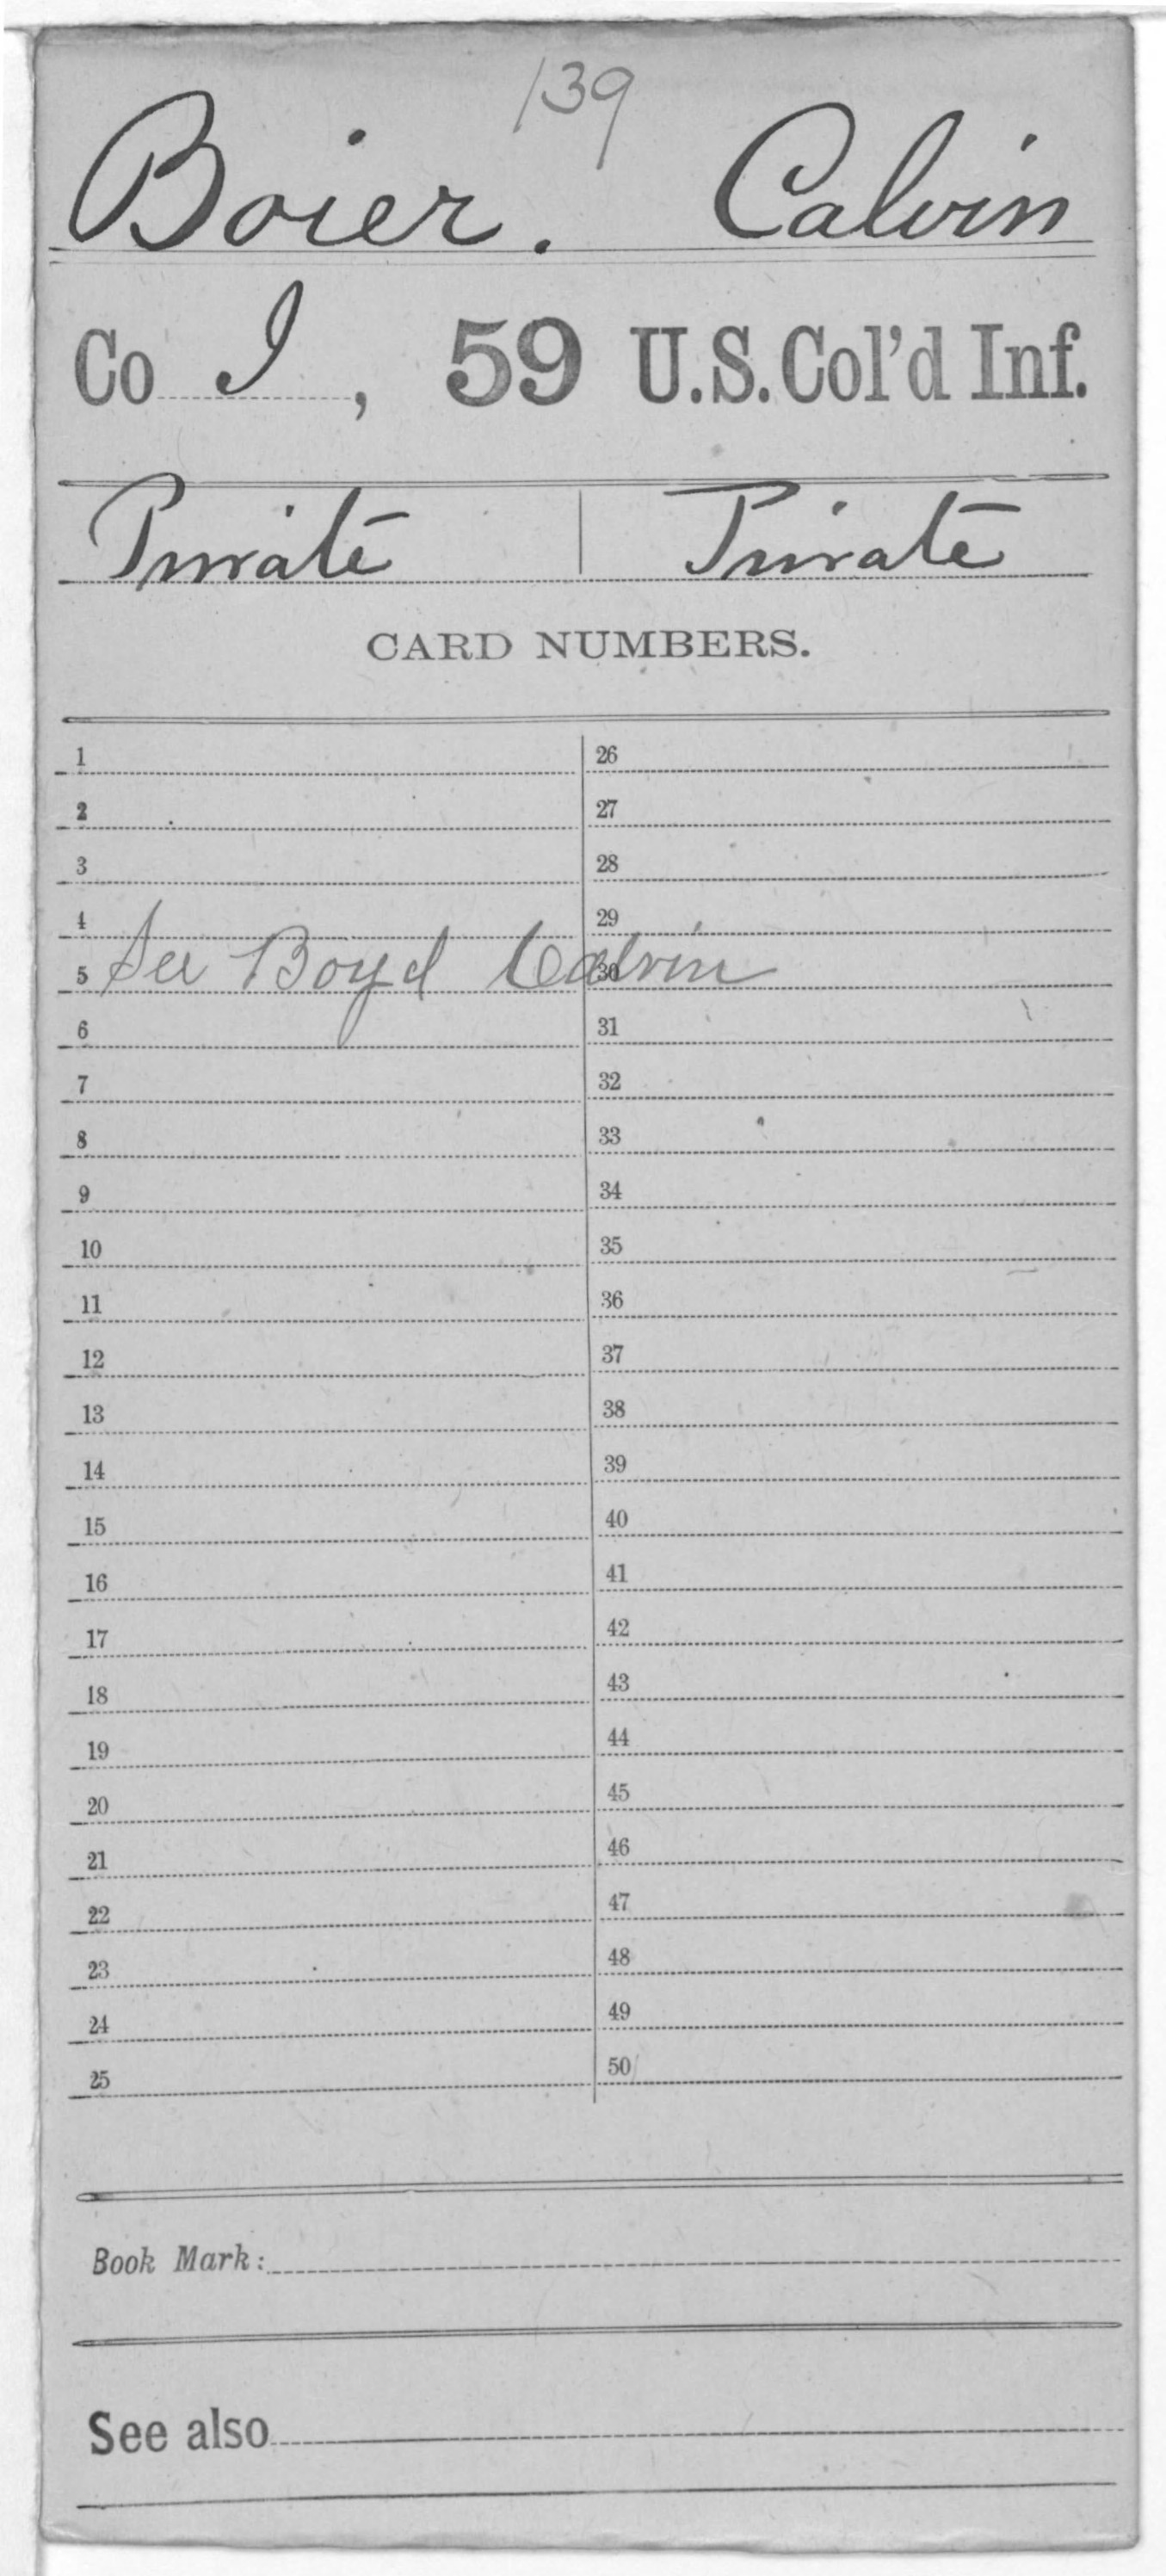 Military Service Record of Calvin Boier, United States Colored Troops: 59th US Colored Infantry